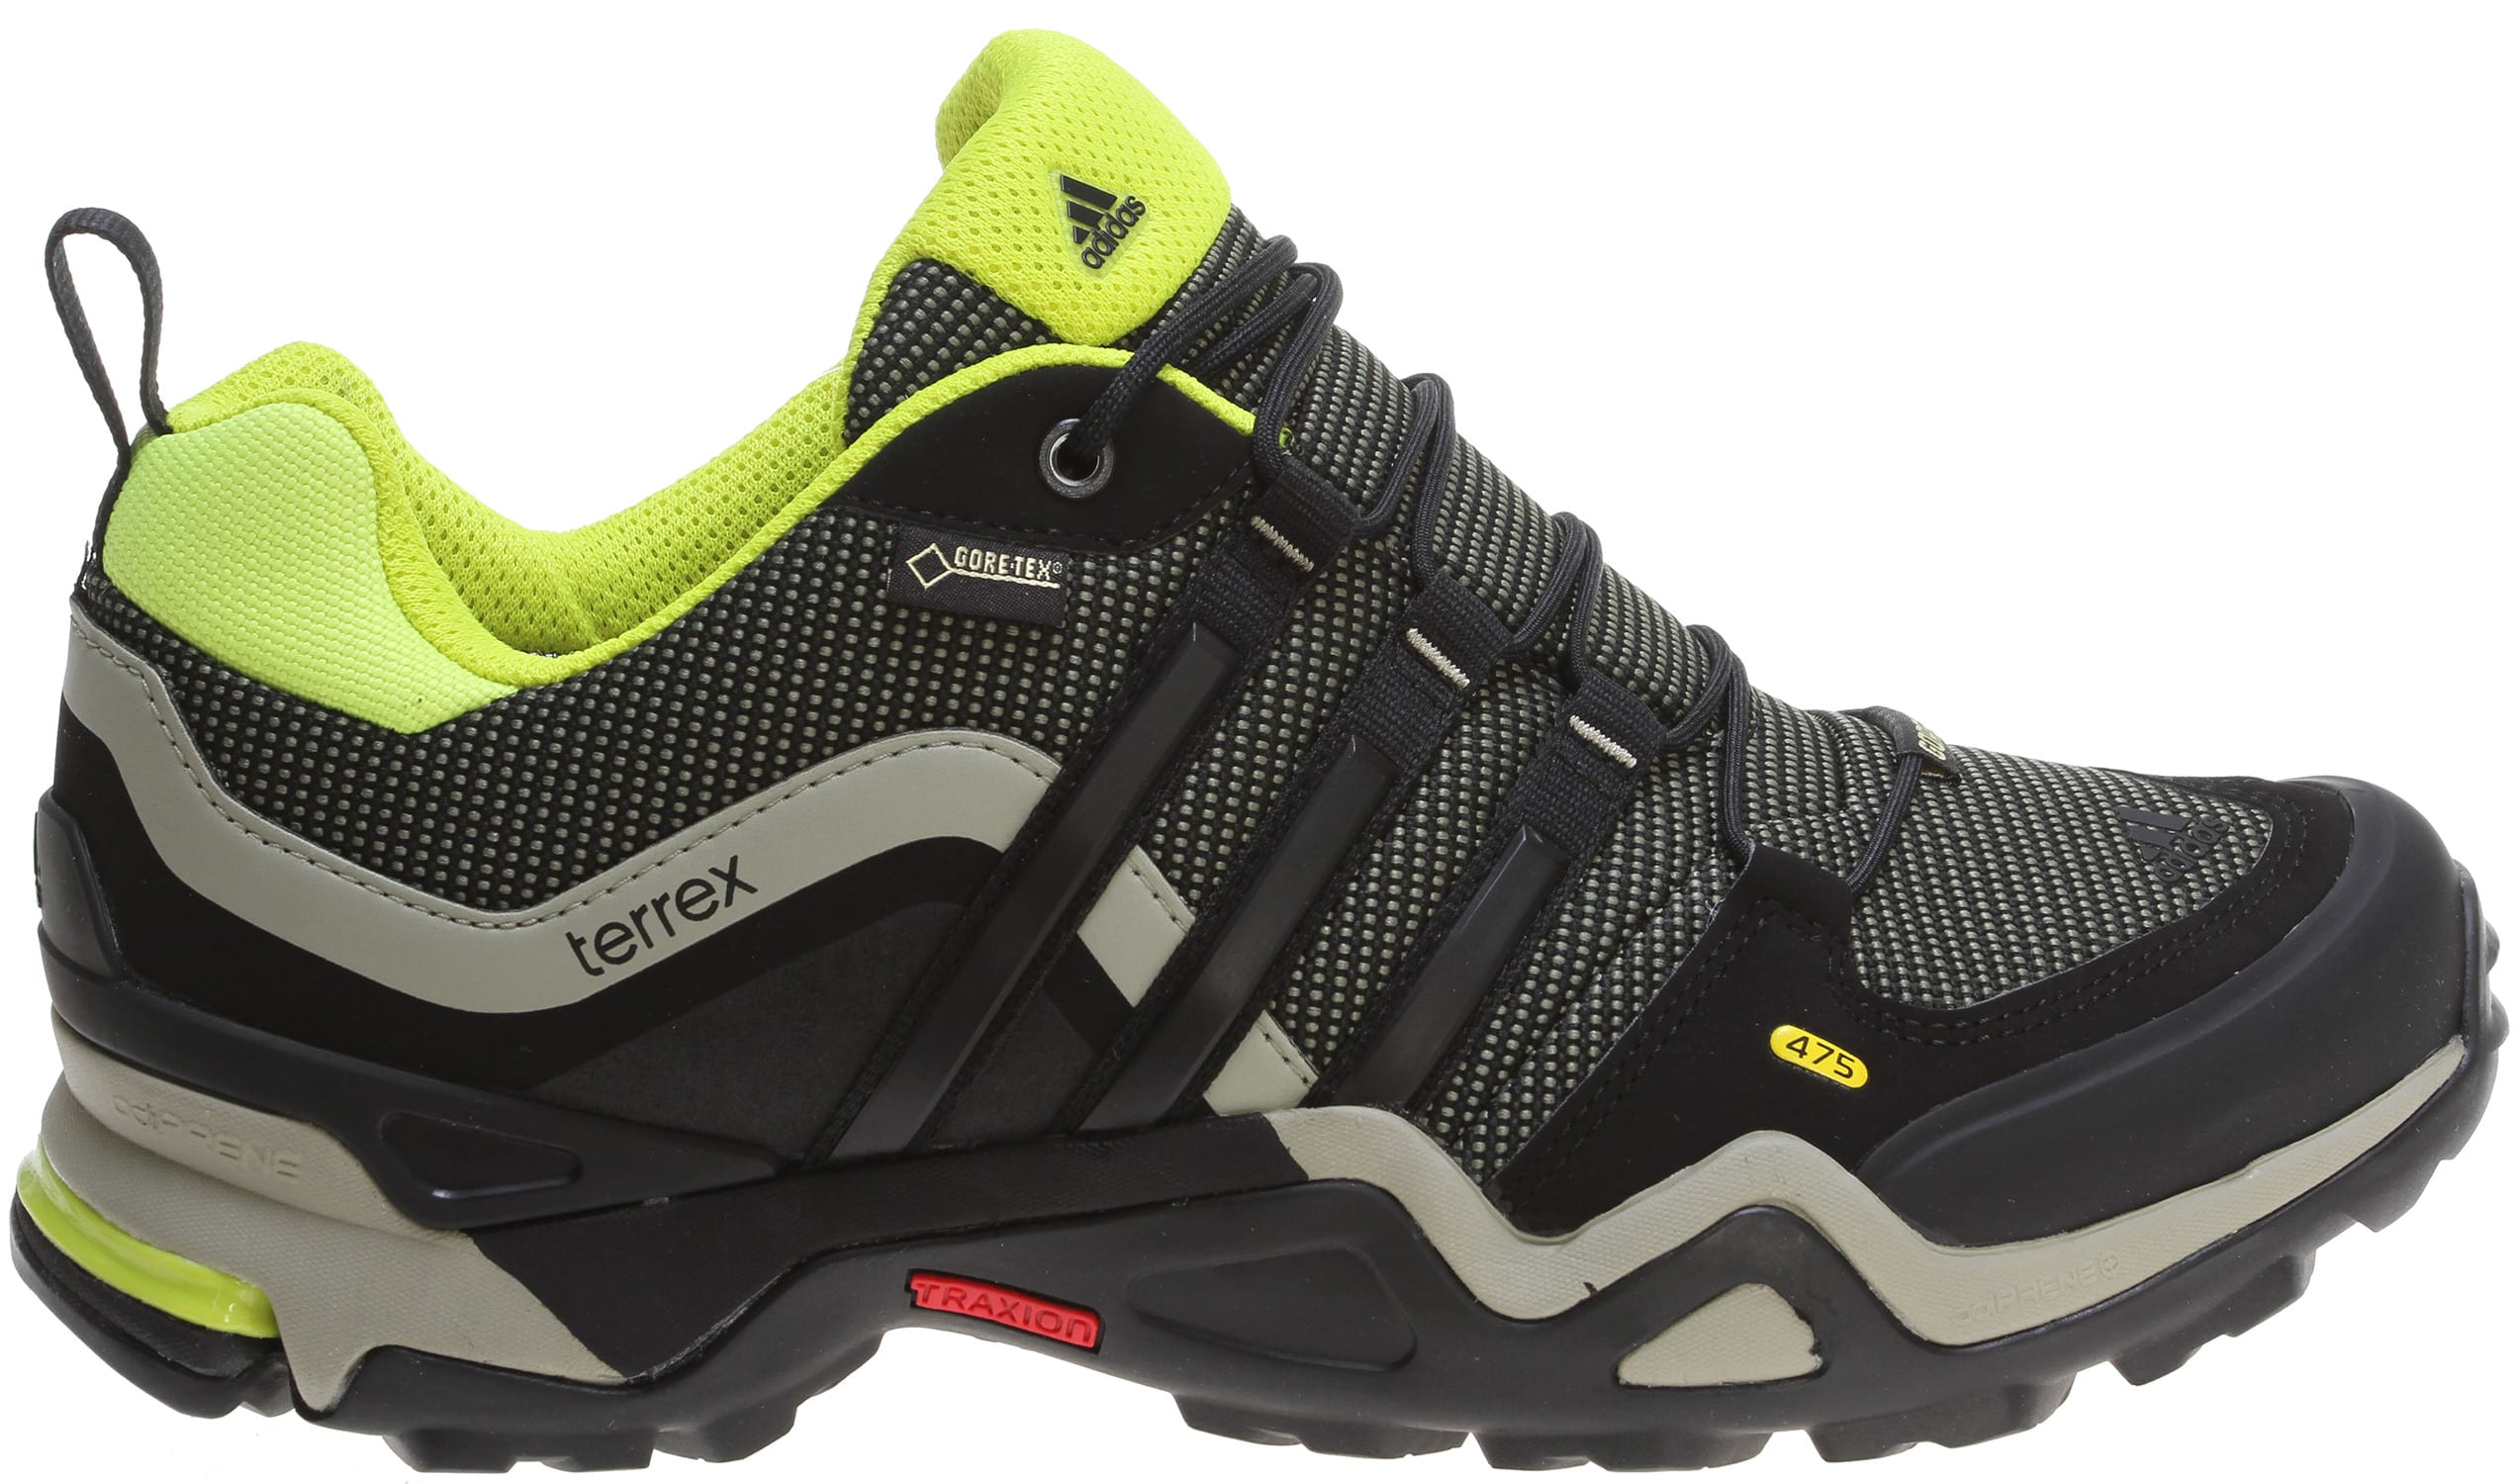 Adidas Terrex Fast X GTX Hiking Shoes